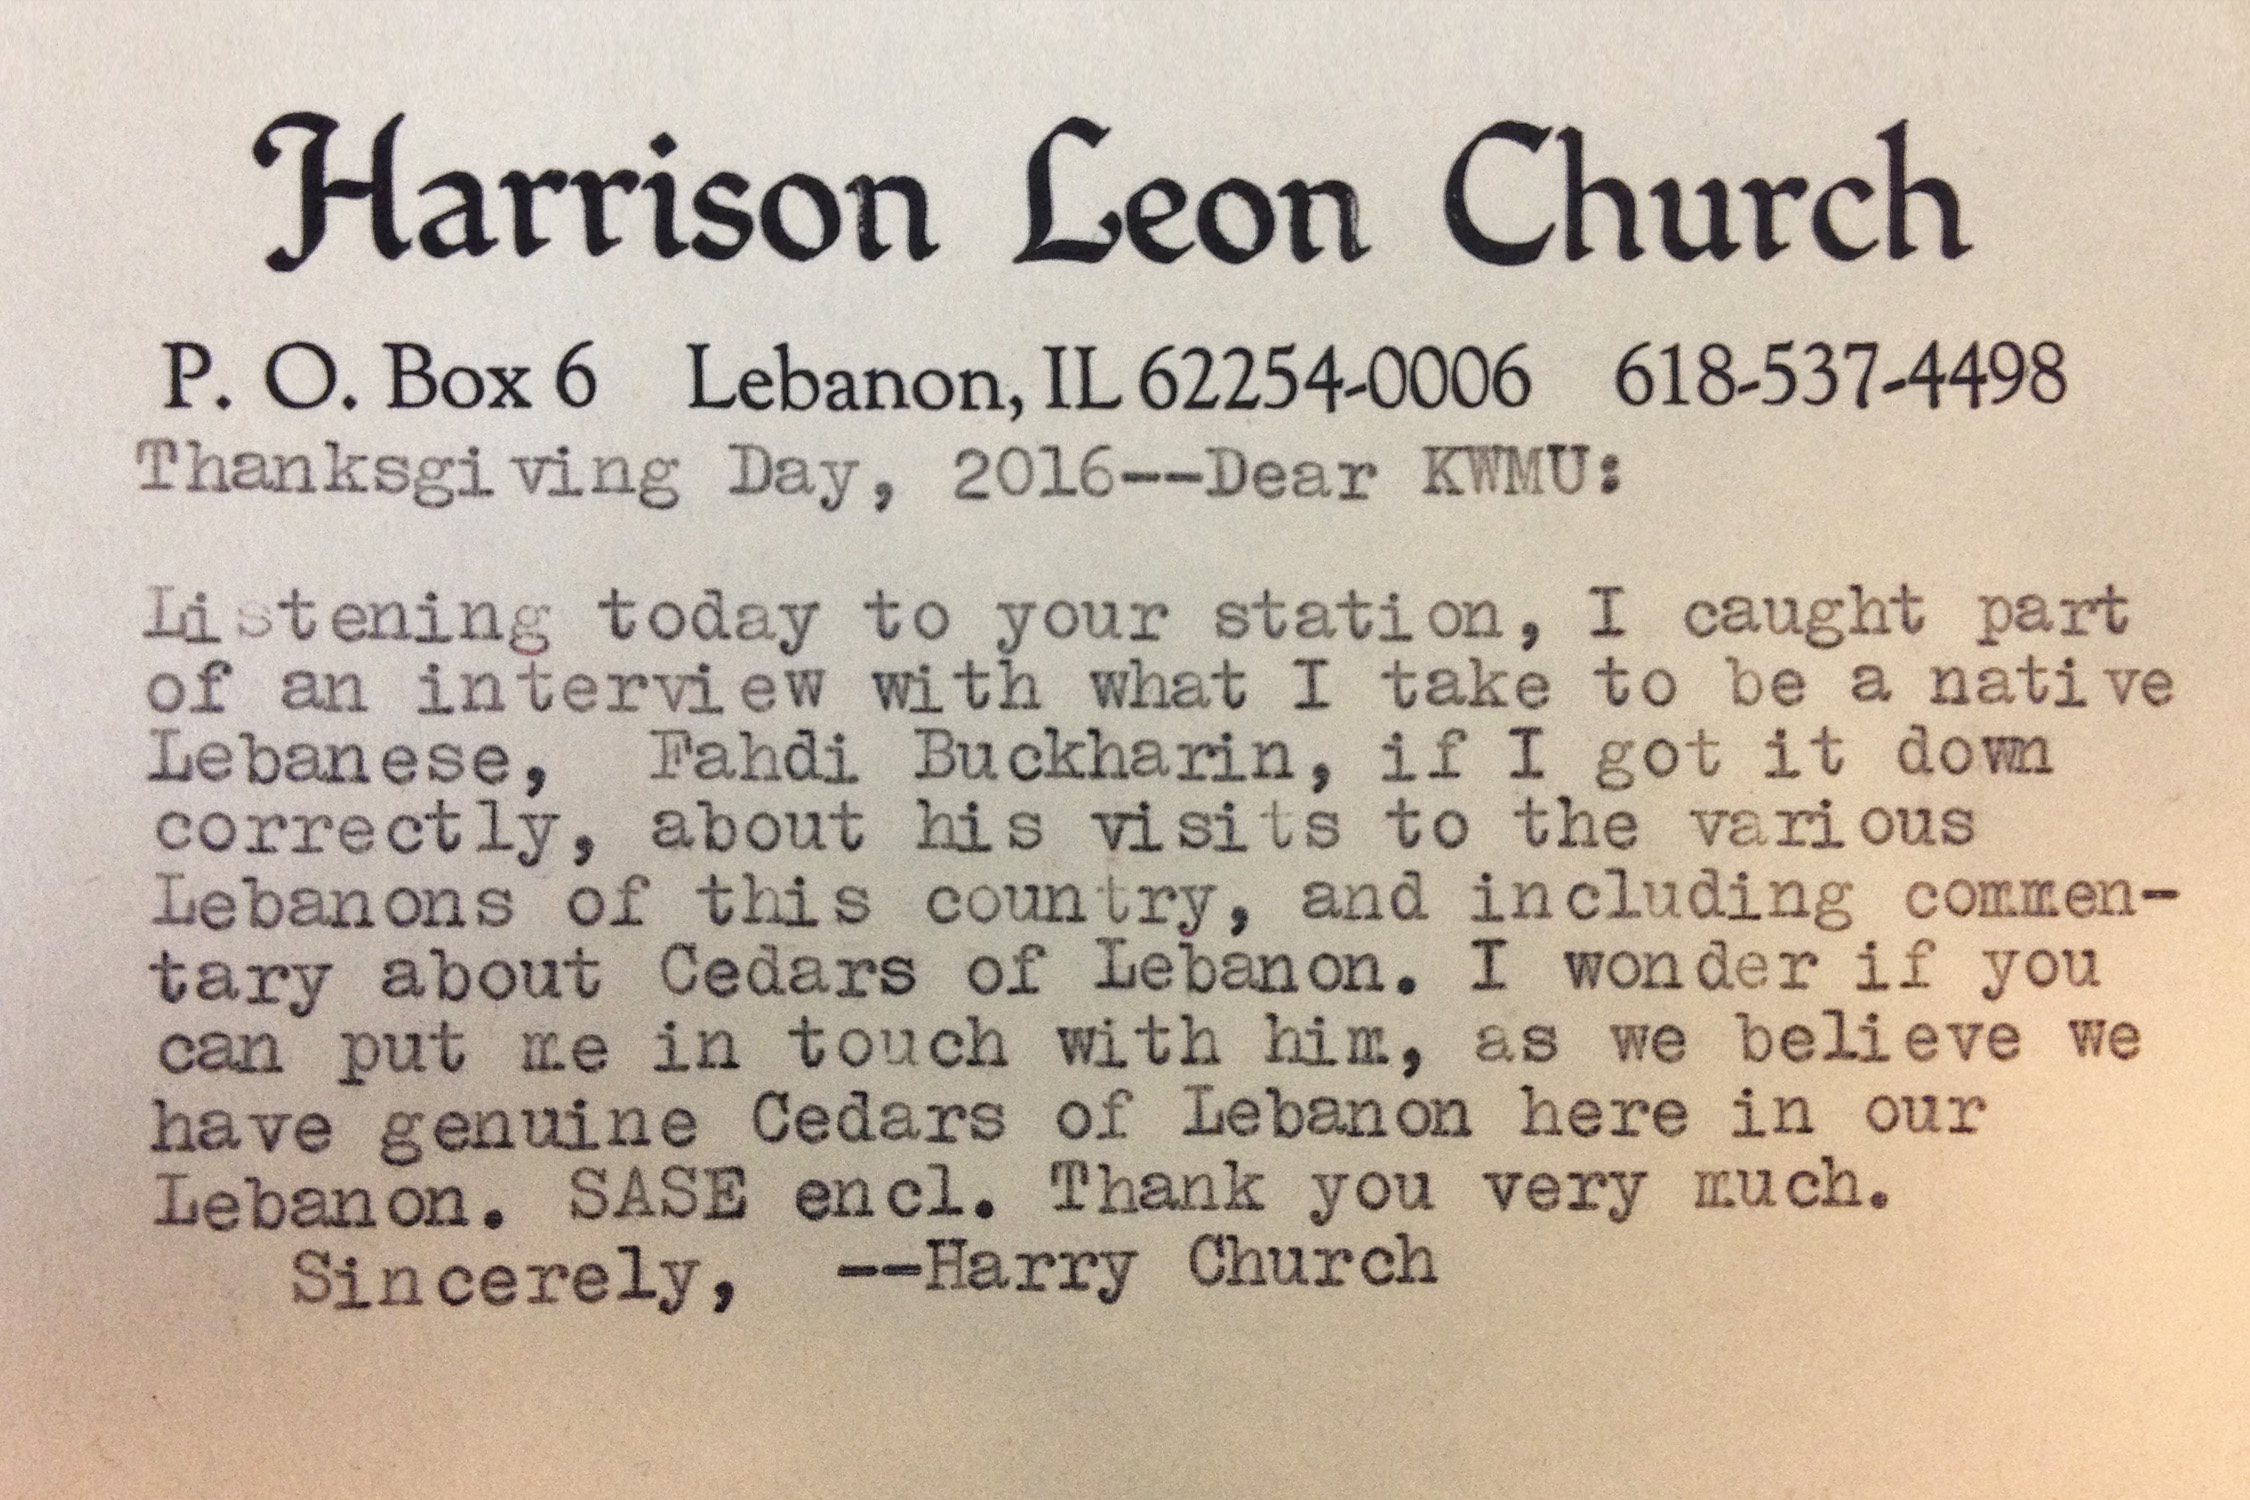 Letter sent by Harry Church to KWMU St. Louis.